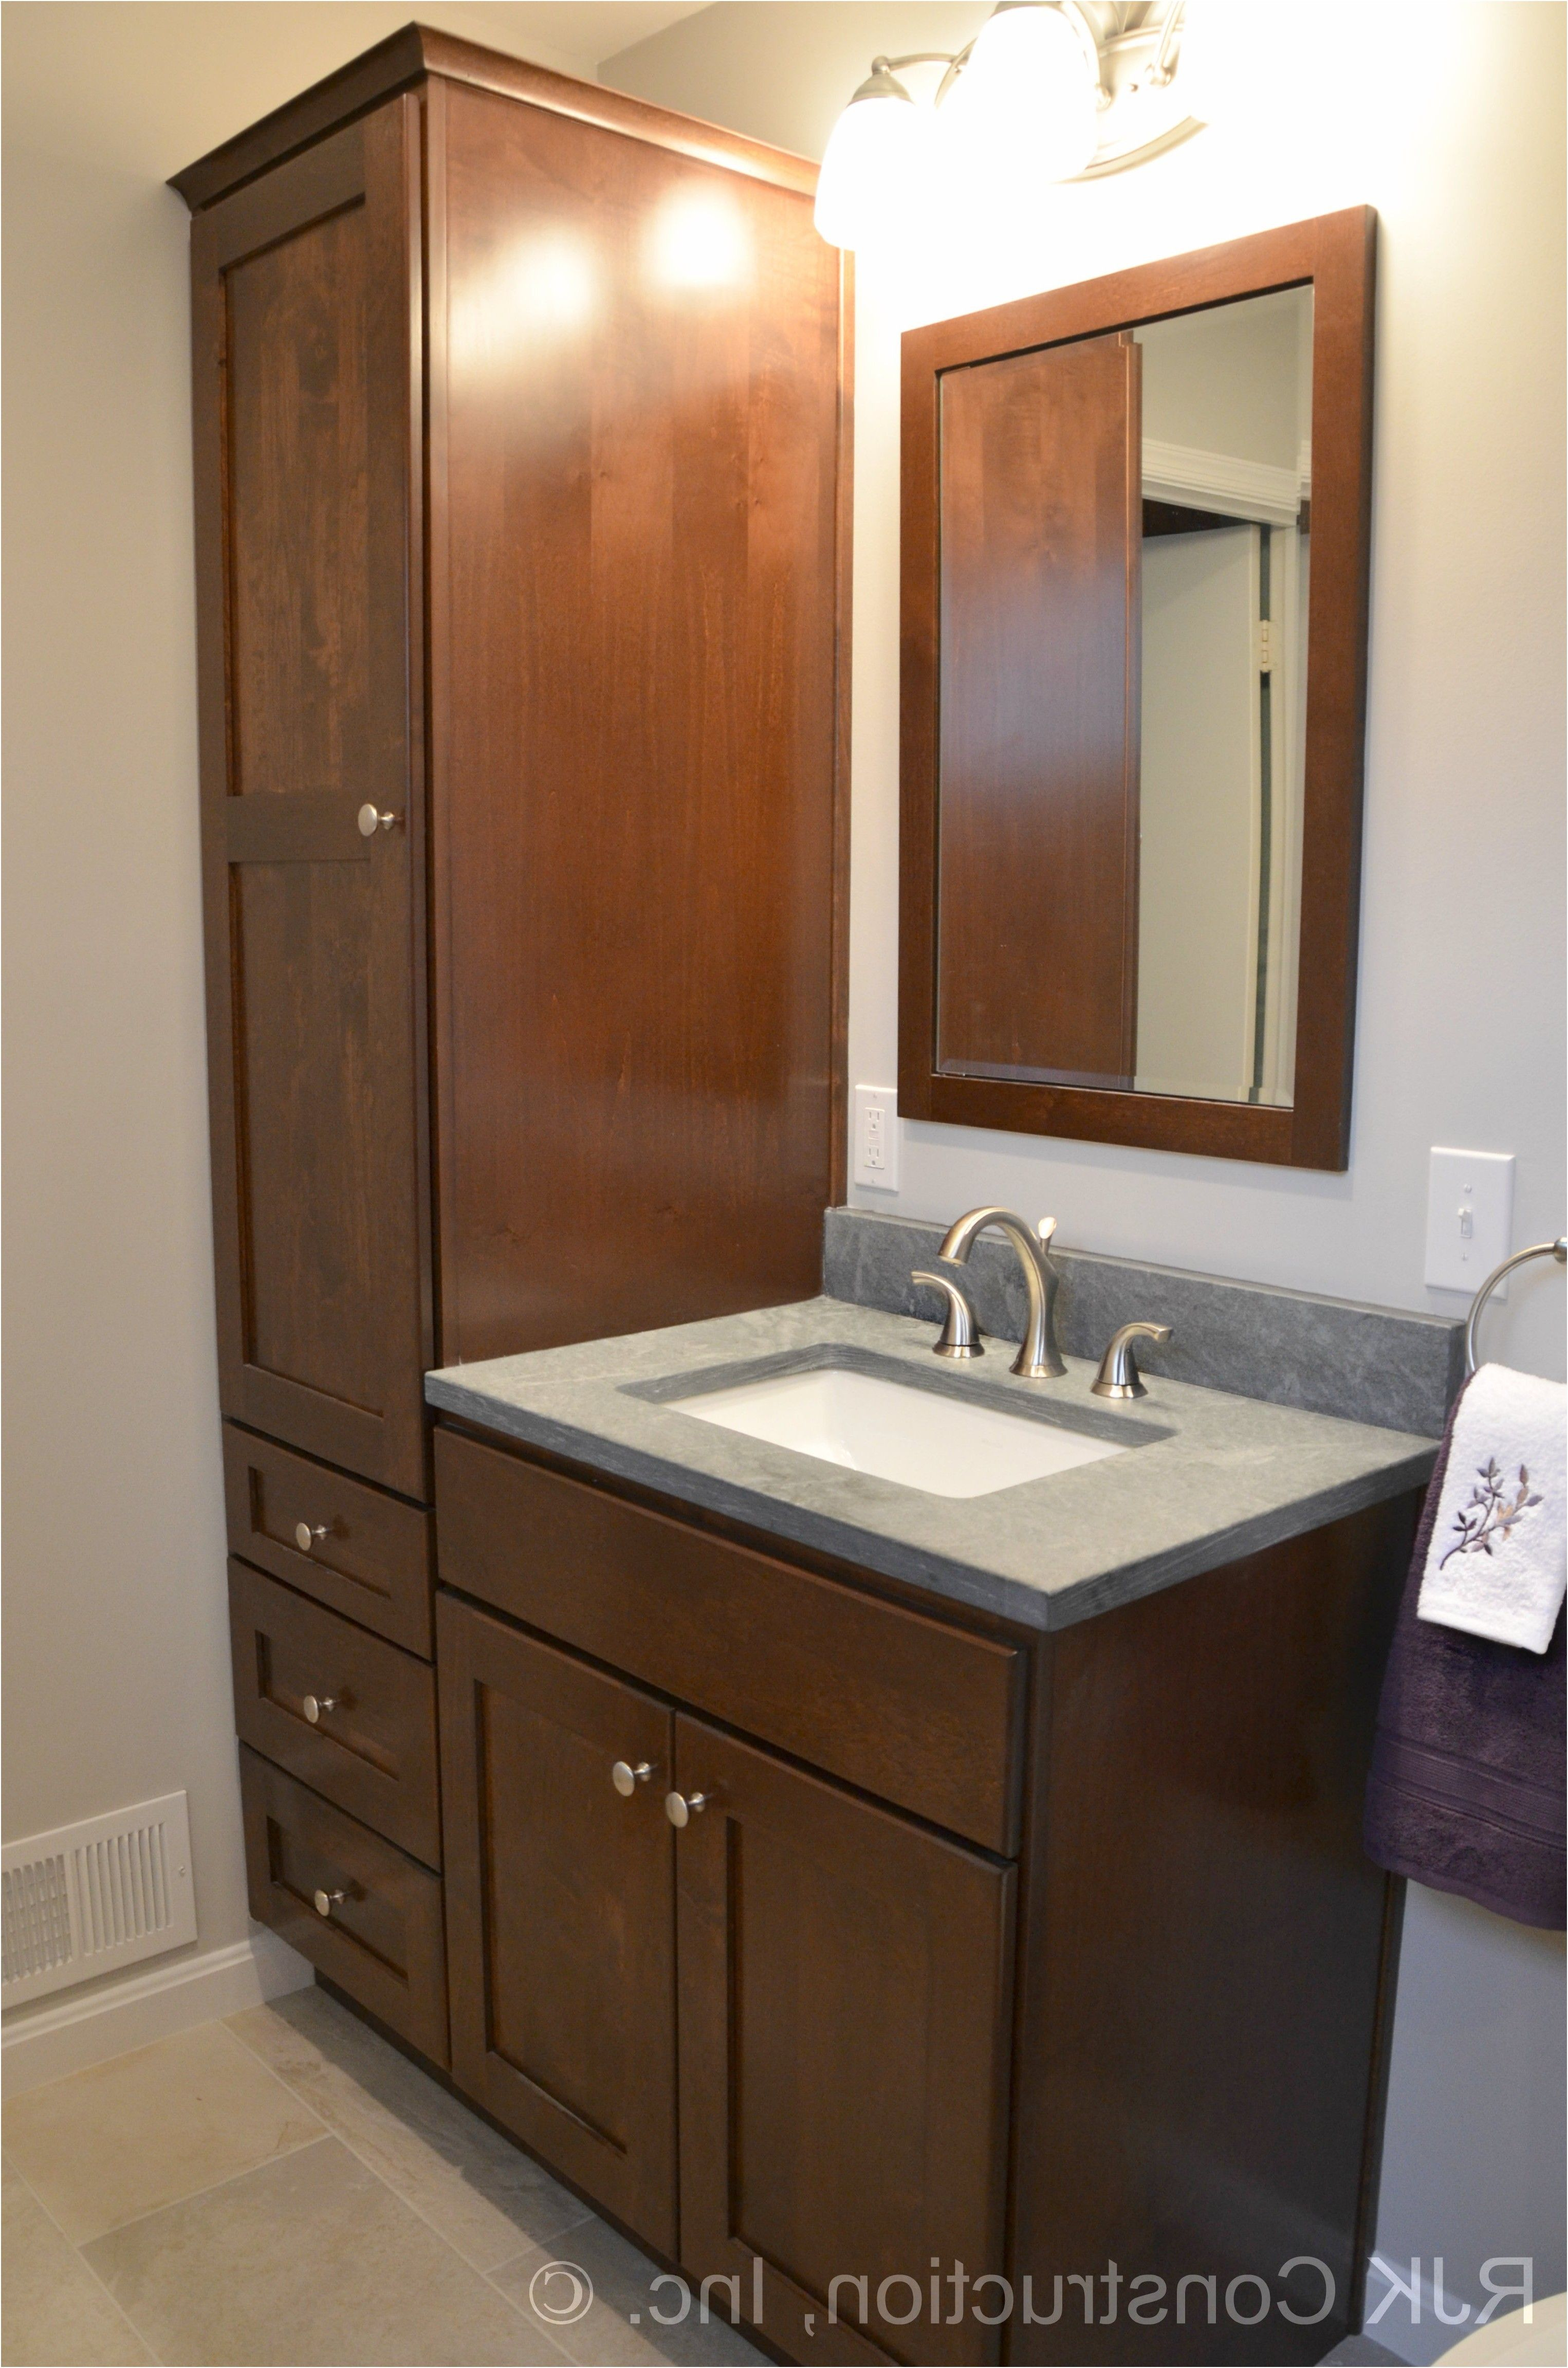 Bathroom Vanity With Side Cabinet Bathroom Cabinets From Bathroom